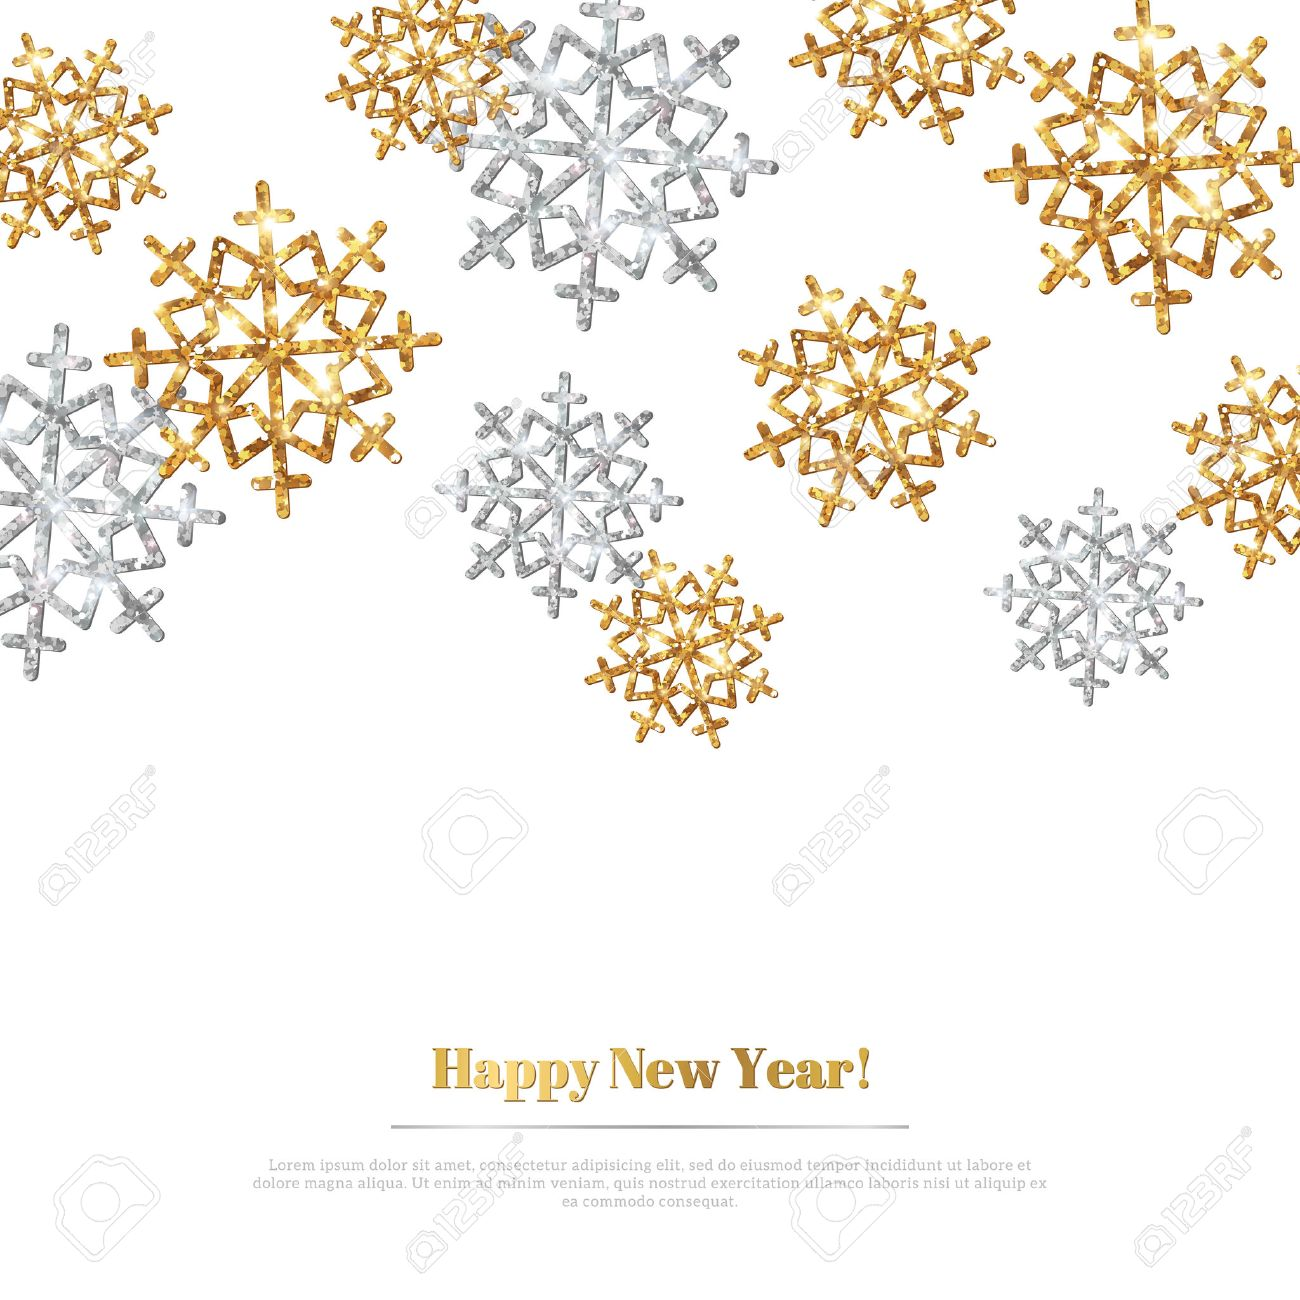 Merry christmas background with gold and silver snowflakes vector season greetings banner merry christmas background with gold and silver snowflakes vector illustration gold glitter texture kristyandbryce Choice Image